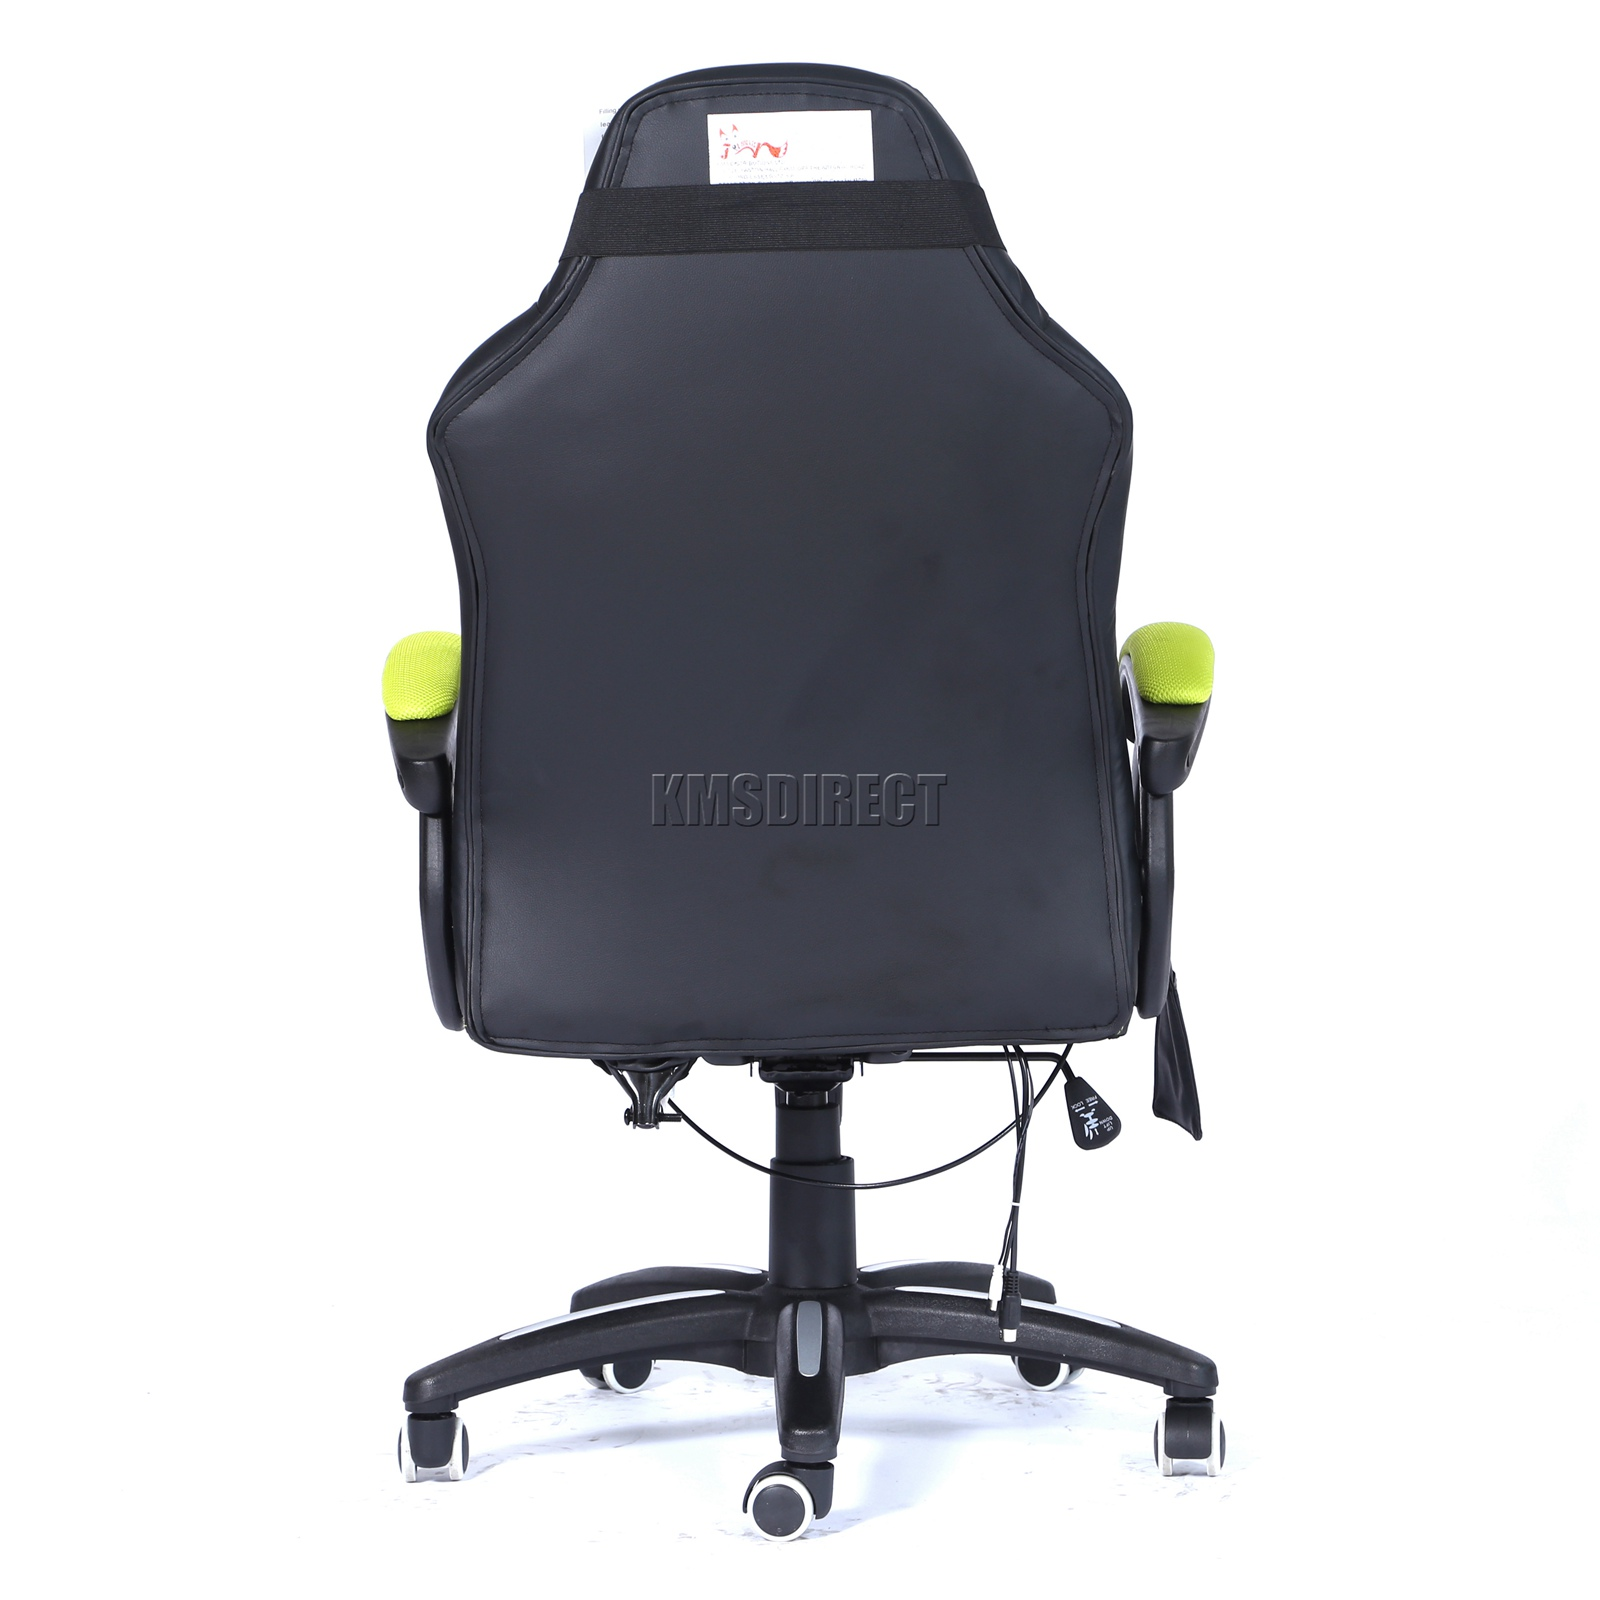 WestWood-Heated-Massage-Office-Chair-Gaming-amp-Computer-Recliner-Swivel-MC09 thumbnail 24